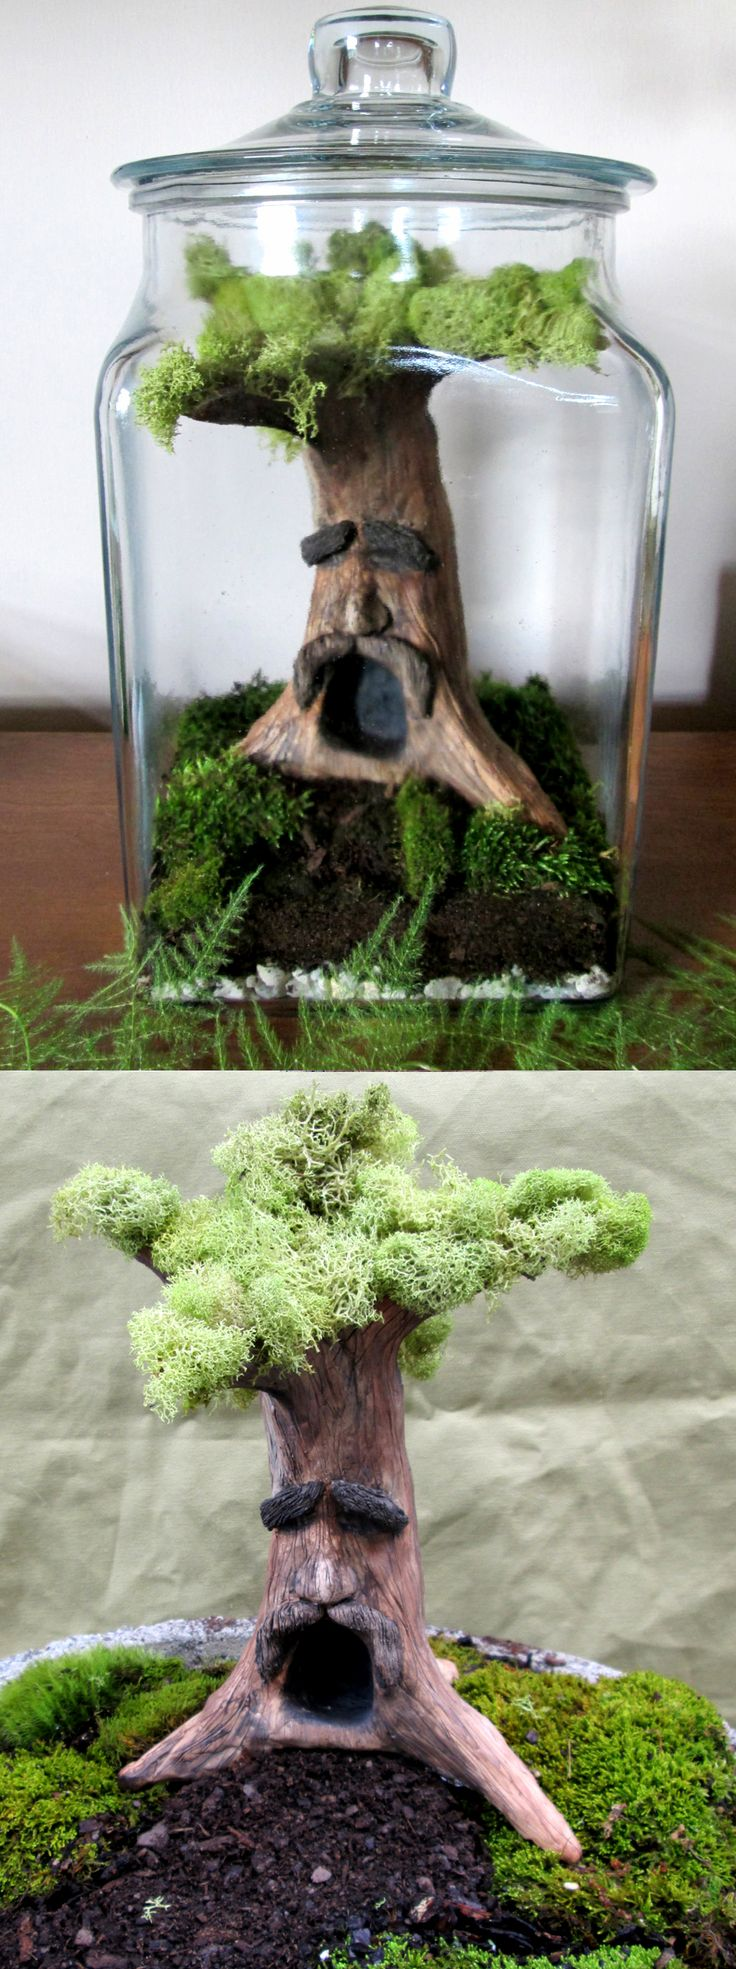 Own a piece of Hyrule with a Great Deku Tree terrarium! Includes everything you need to create and display your very own lively Legend of Zelda themed garden that comes ideal for fans of the game and nature lovers alike.